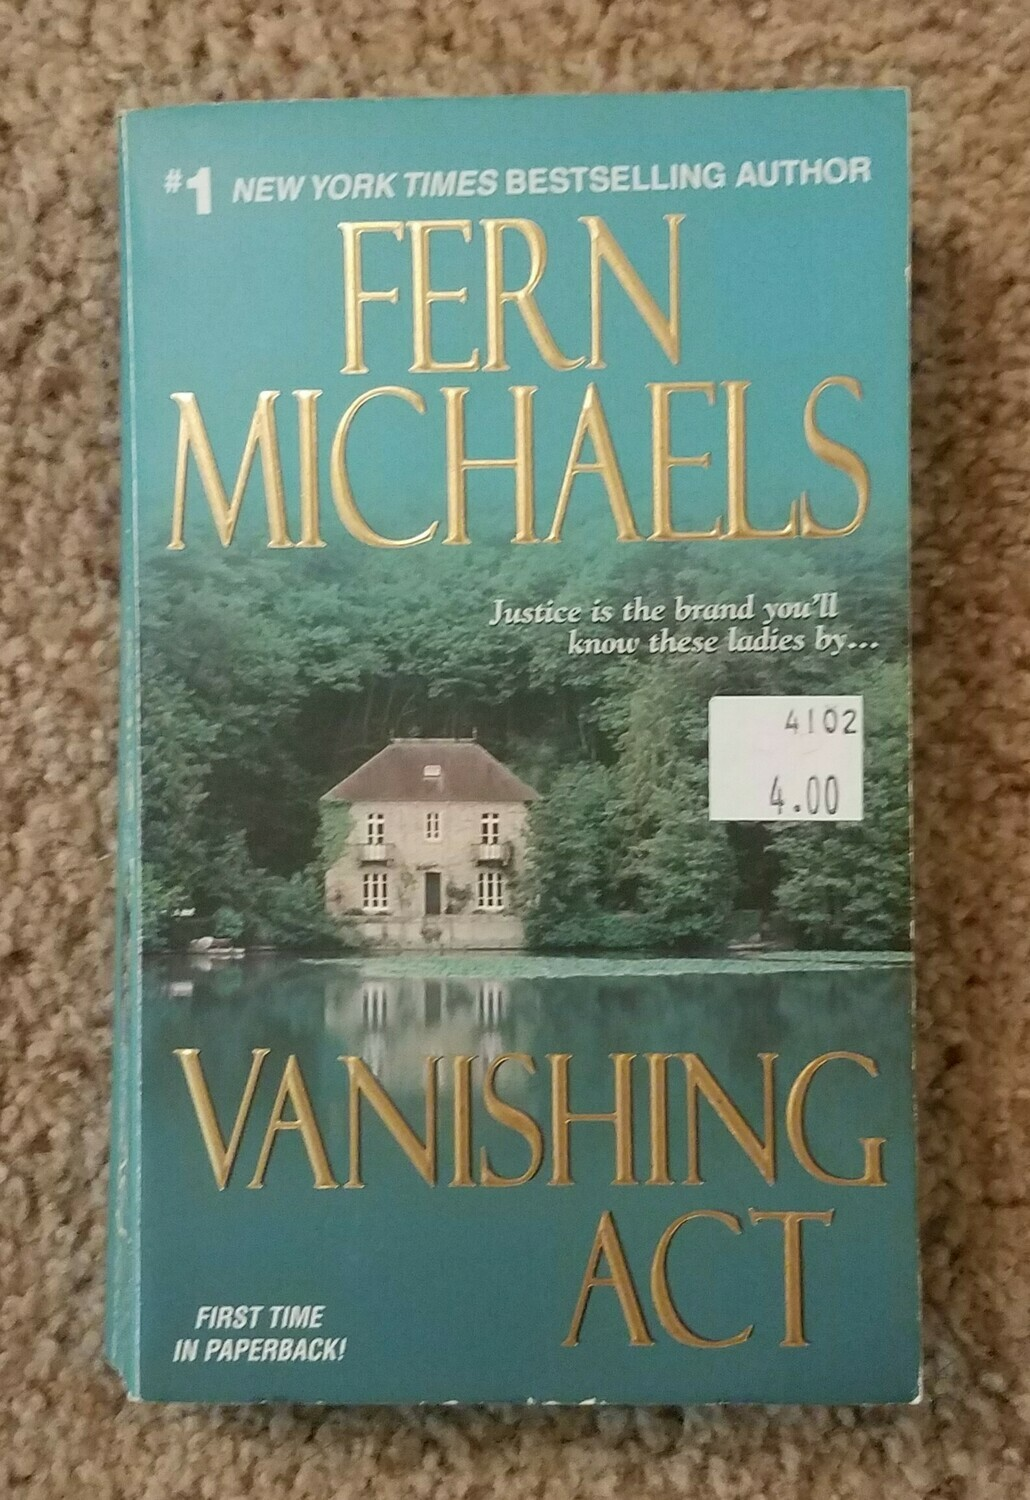 Vanishing Act by Fern Michaels